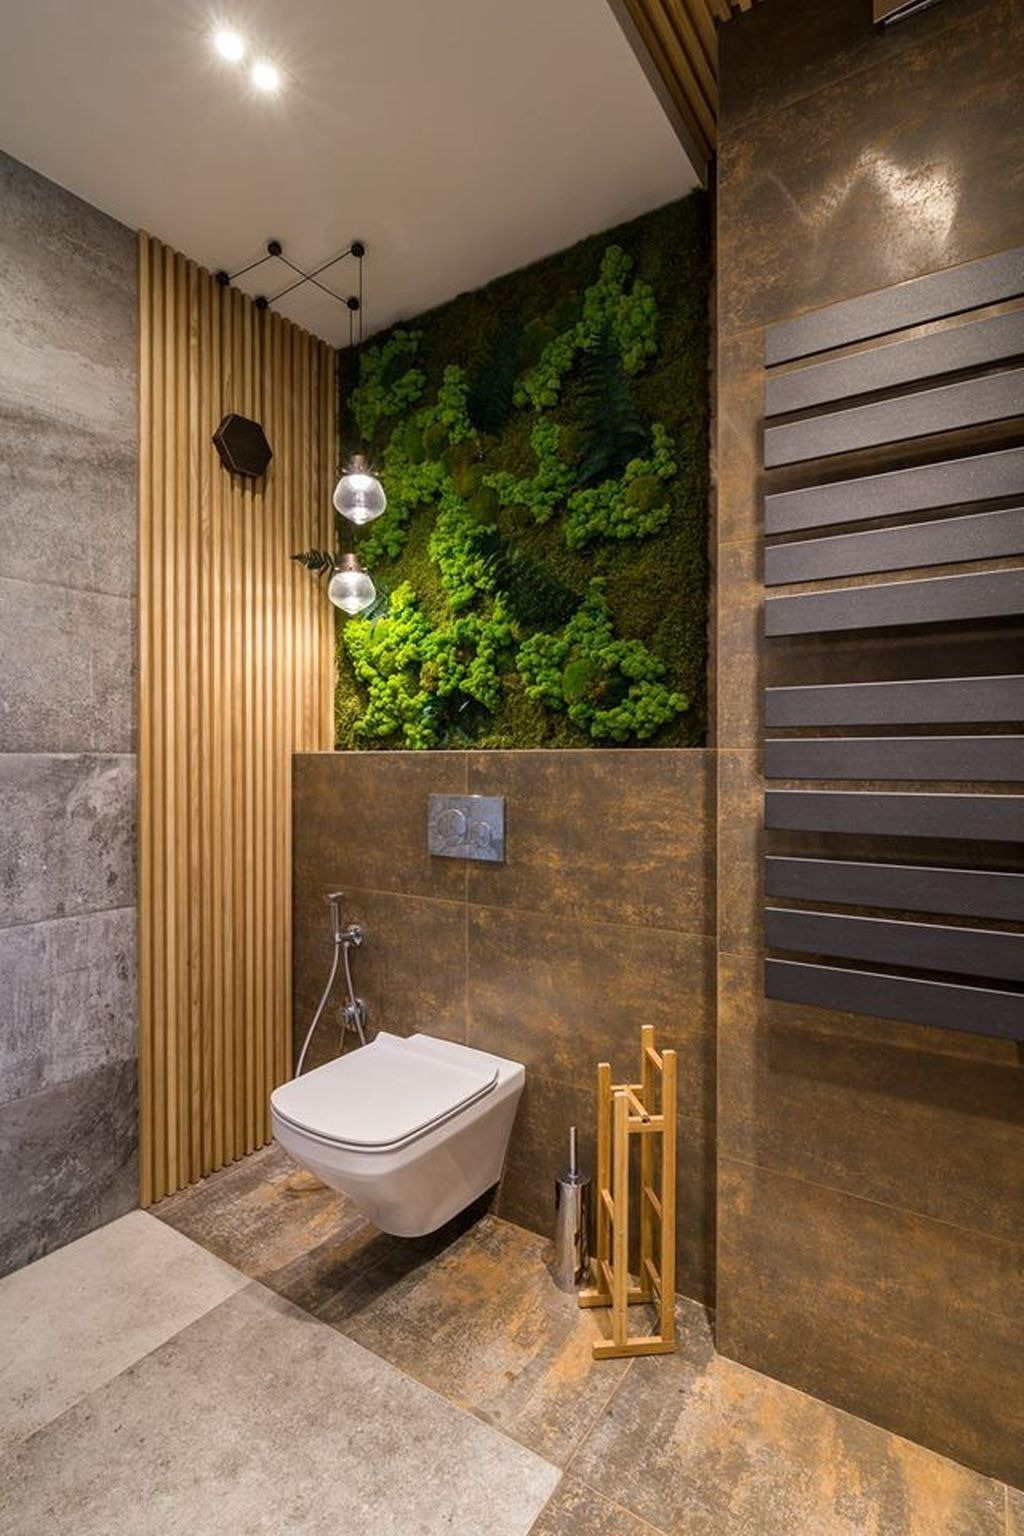 Bathroom Decorative Wall Panels Unique Awesome 20 Inspiring Bathroom Decoration Ideas with Wooden